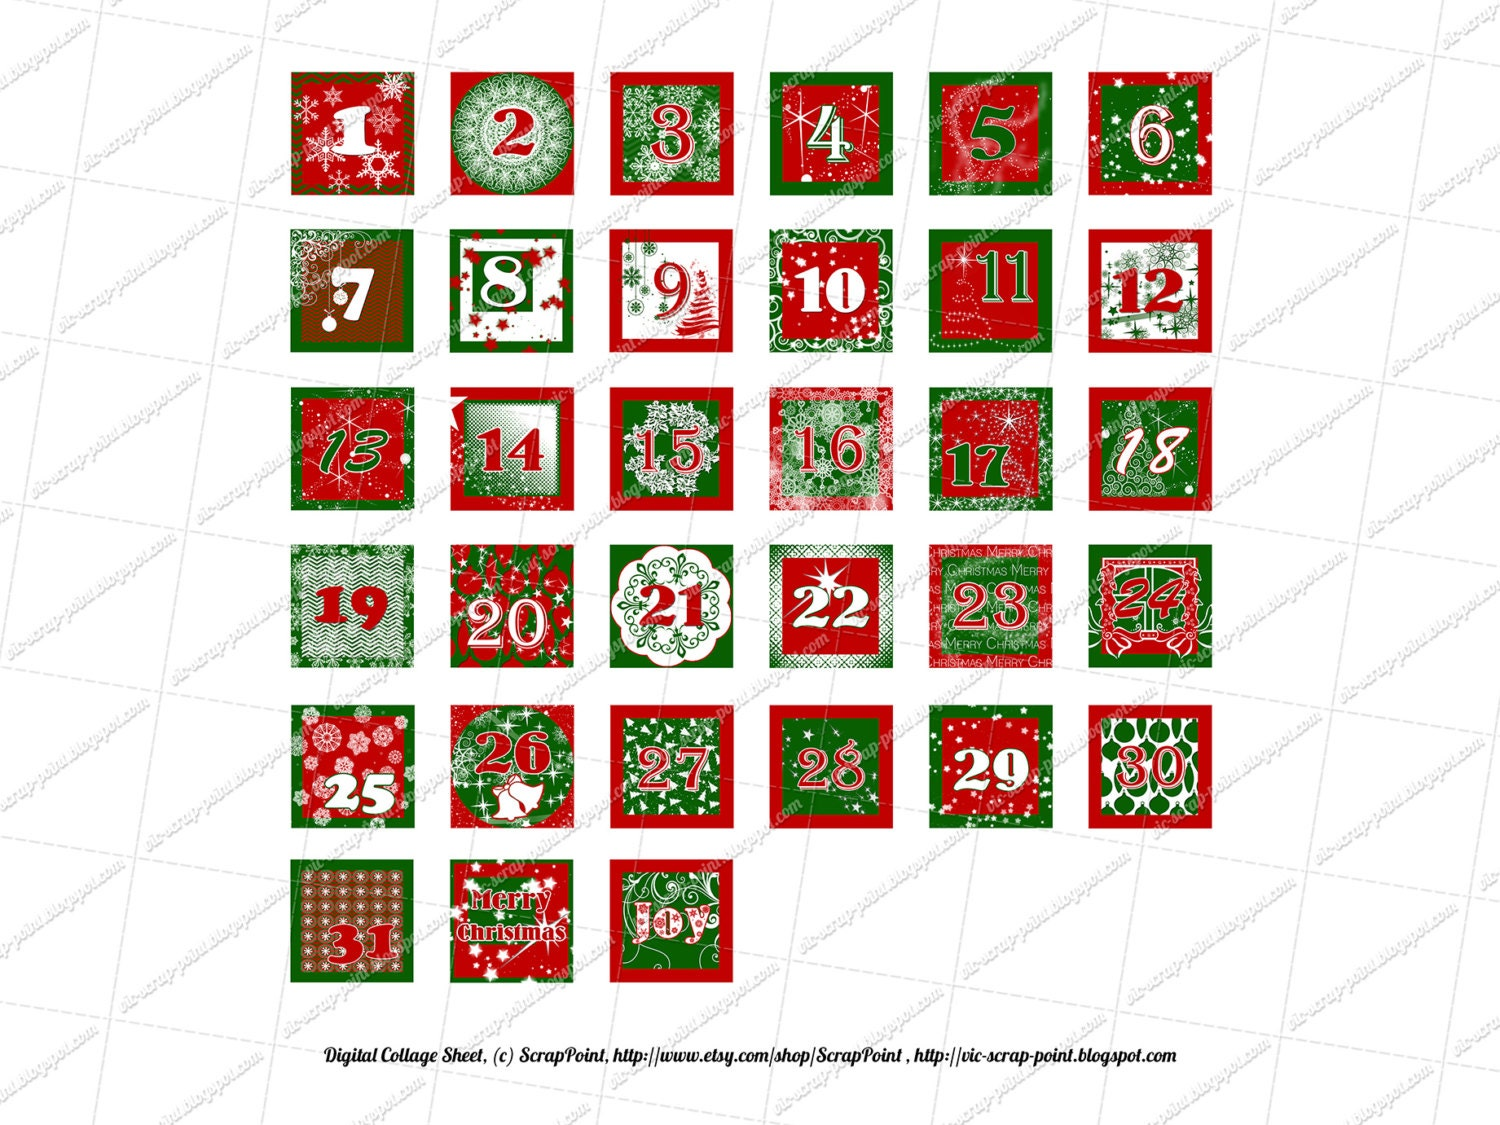 graphic regarding Christmas Numbers Printable named Printable DECEMBER Every day Figures (1, 1.5, 2 3 inch squares) Introduction Calendar. Instantaneous Down load Electronic Collage Sheet Xmas Task Lifetime